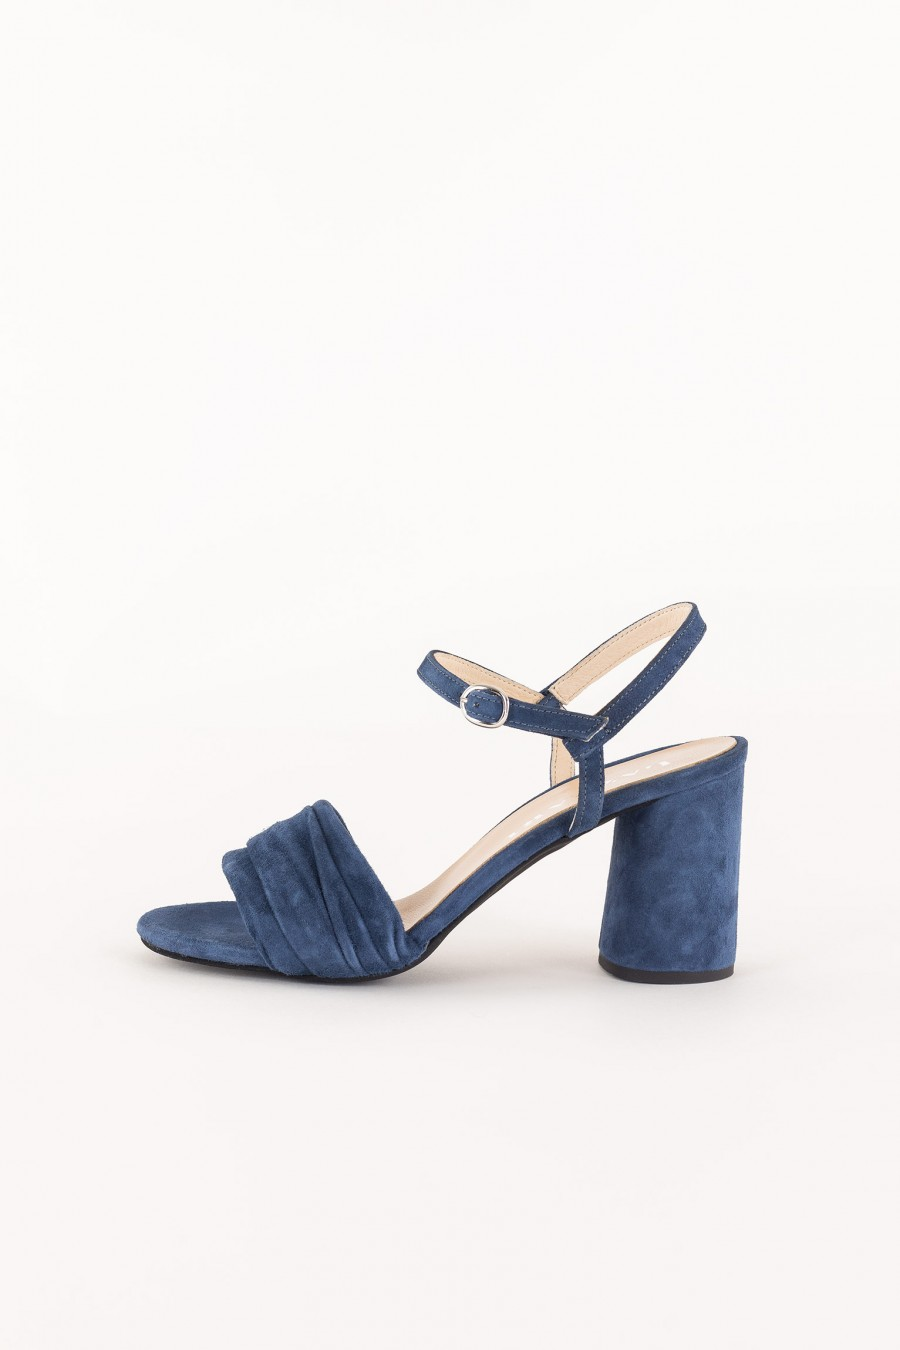 blue sandal with ankle strap